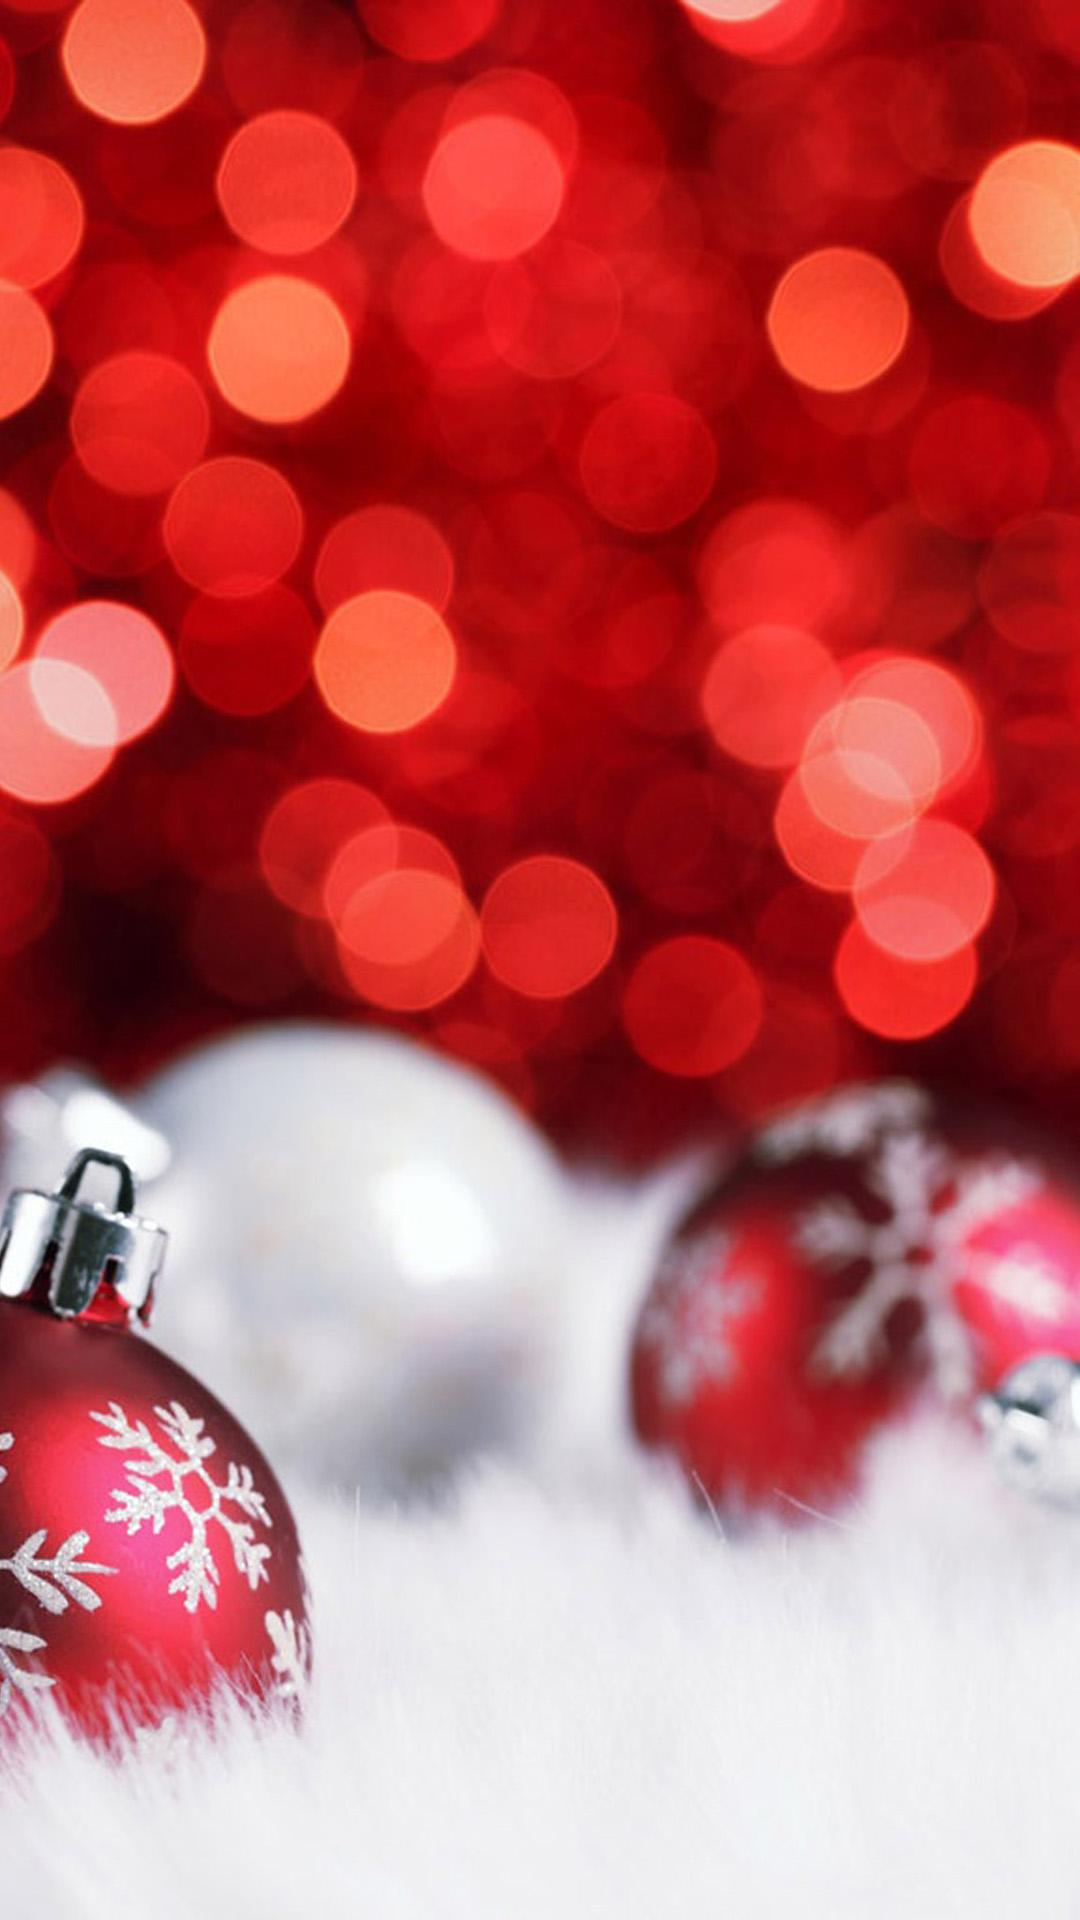 Red And White Christmas Wallpaper : white, christmas, wallpaper, Christmas, White, Wallpapers, Wallpaper